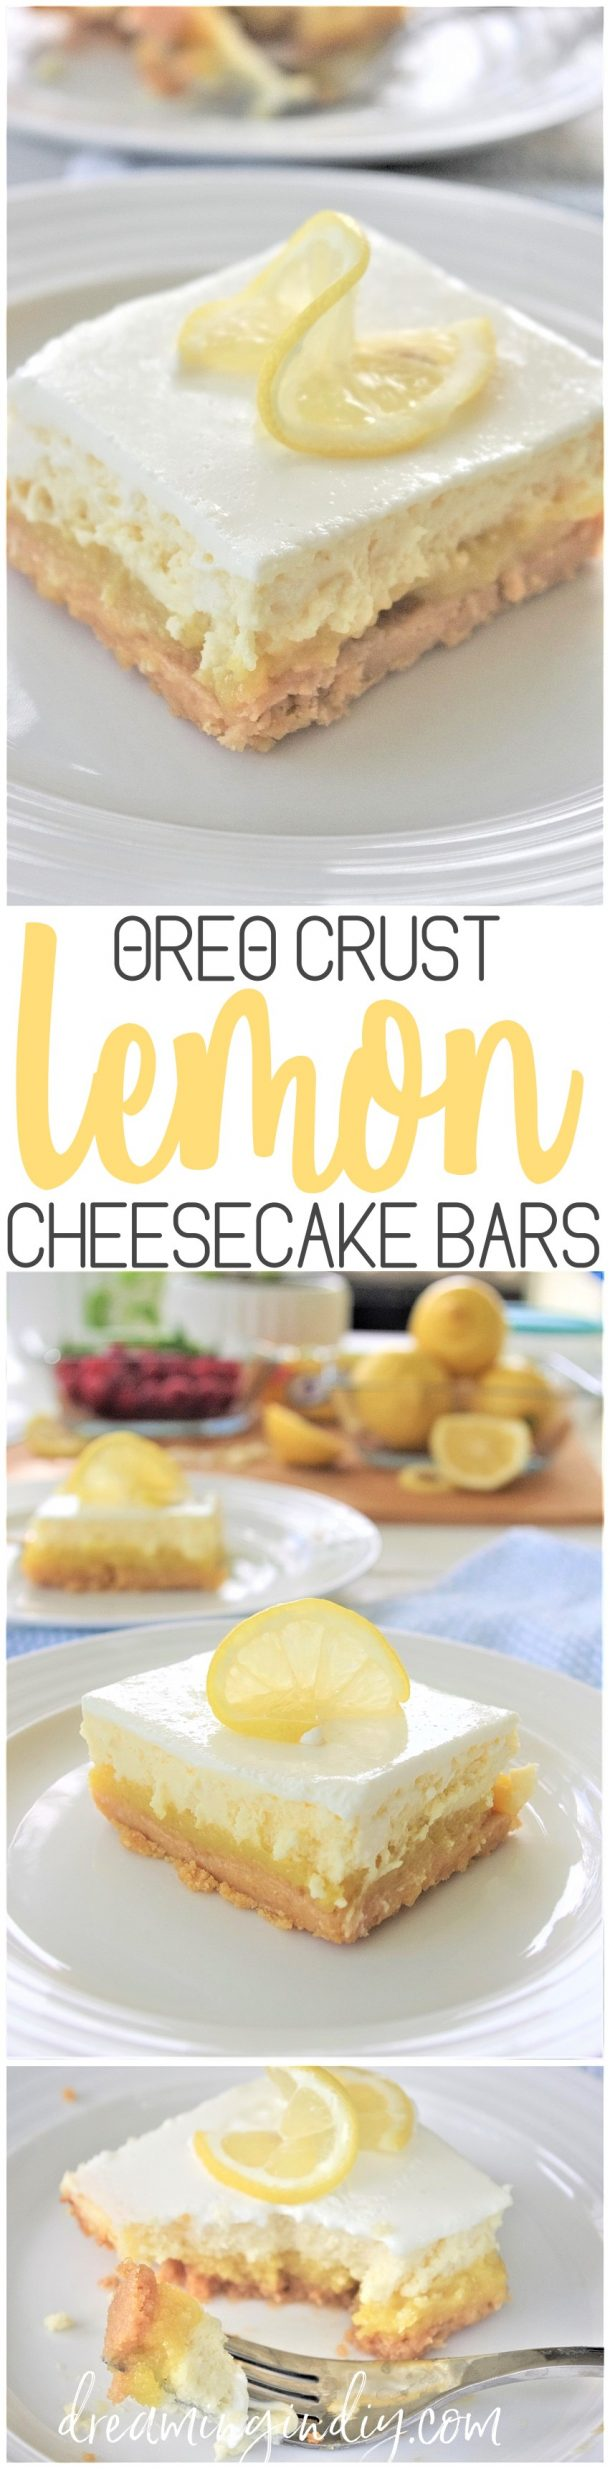 Sweet Spot Dessert Recipes Whether you crave sweet, savory, decadent or healthy, we have hundreds of top-rated dessert recipes to satisfy your taste buds.